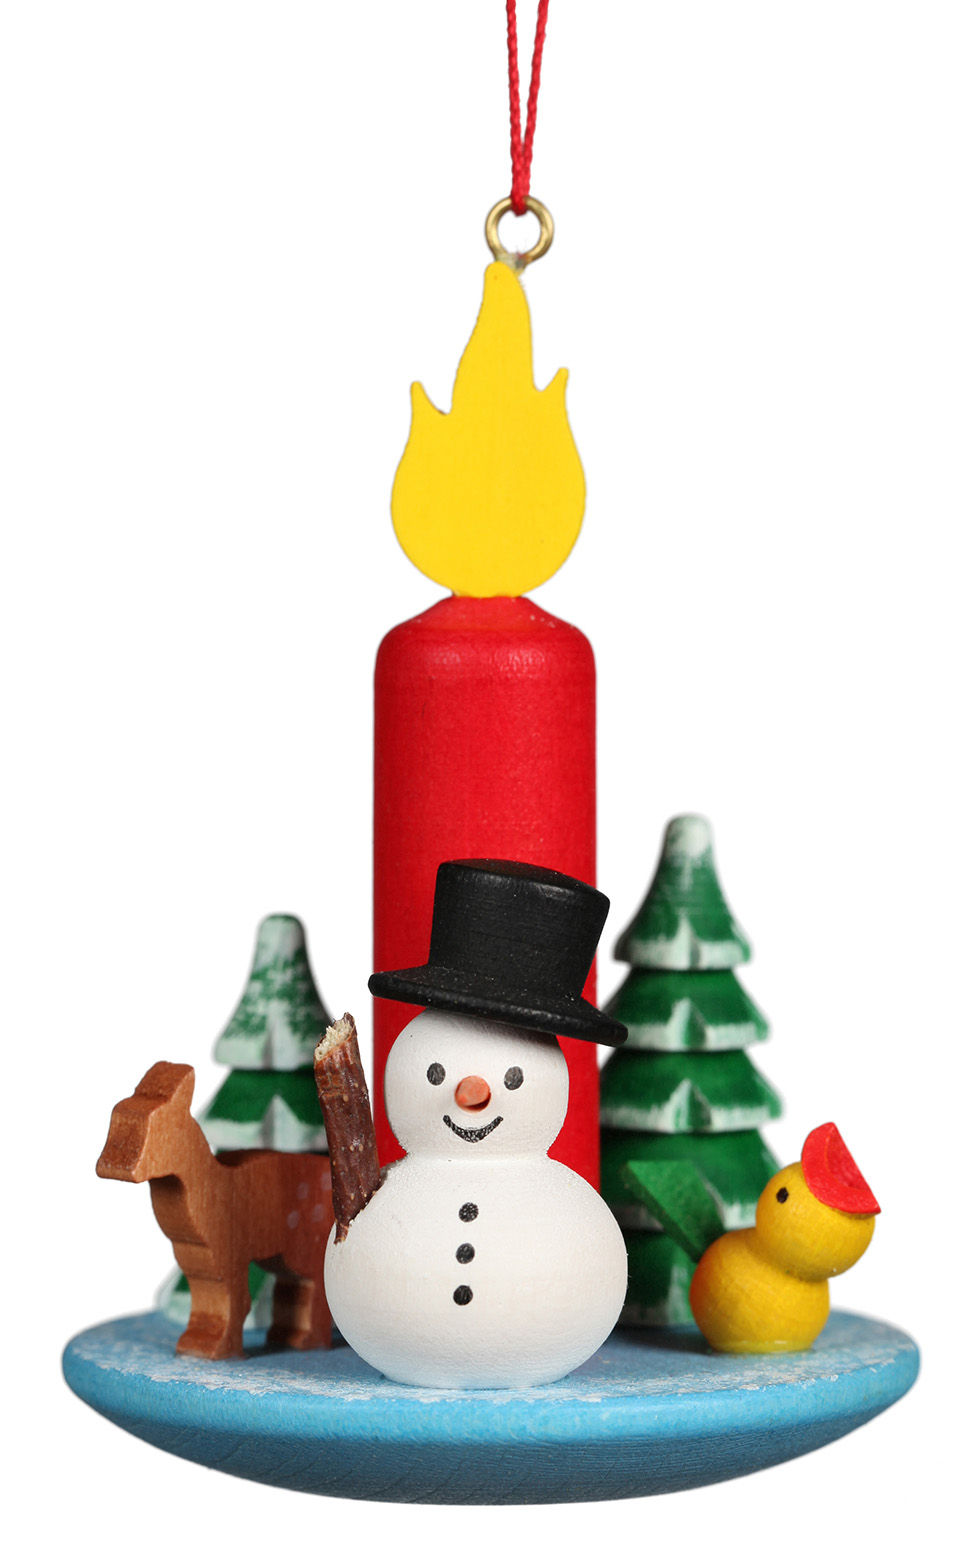 10-645 Candle with Snowman